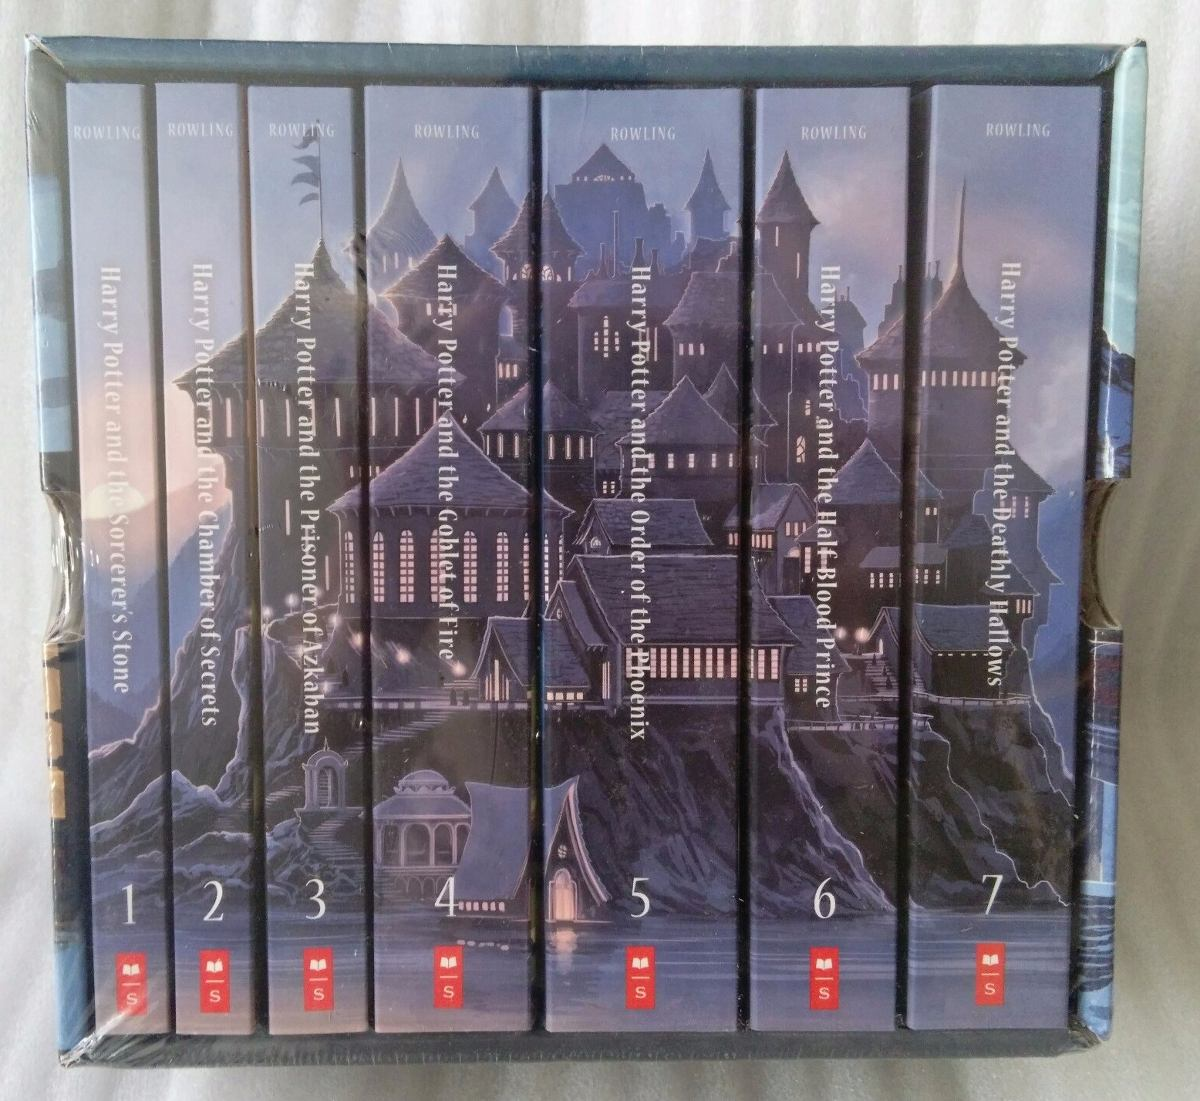 Harry Potter Libros Pdf Libros Harry Potter Box Set Colección Castillo Hogwarts